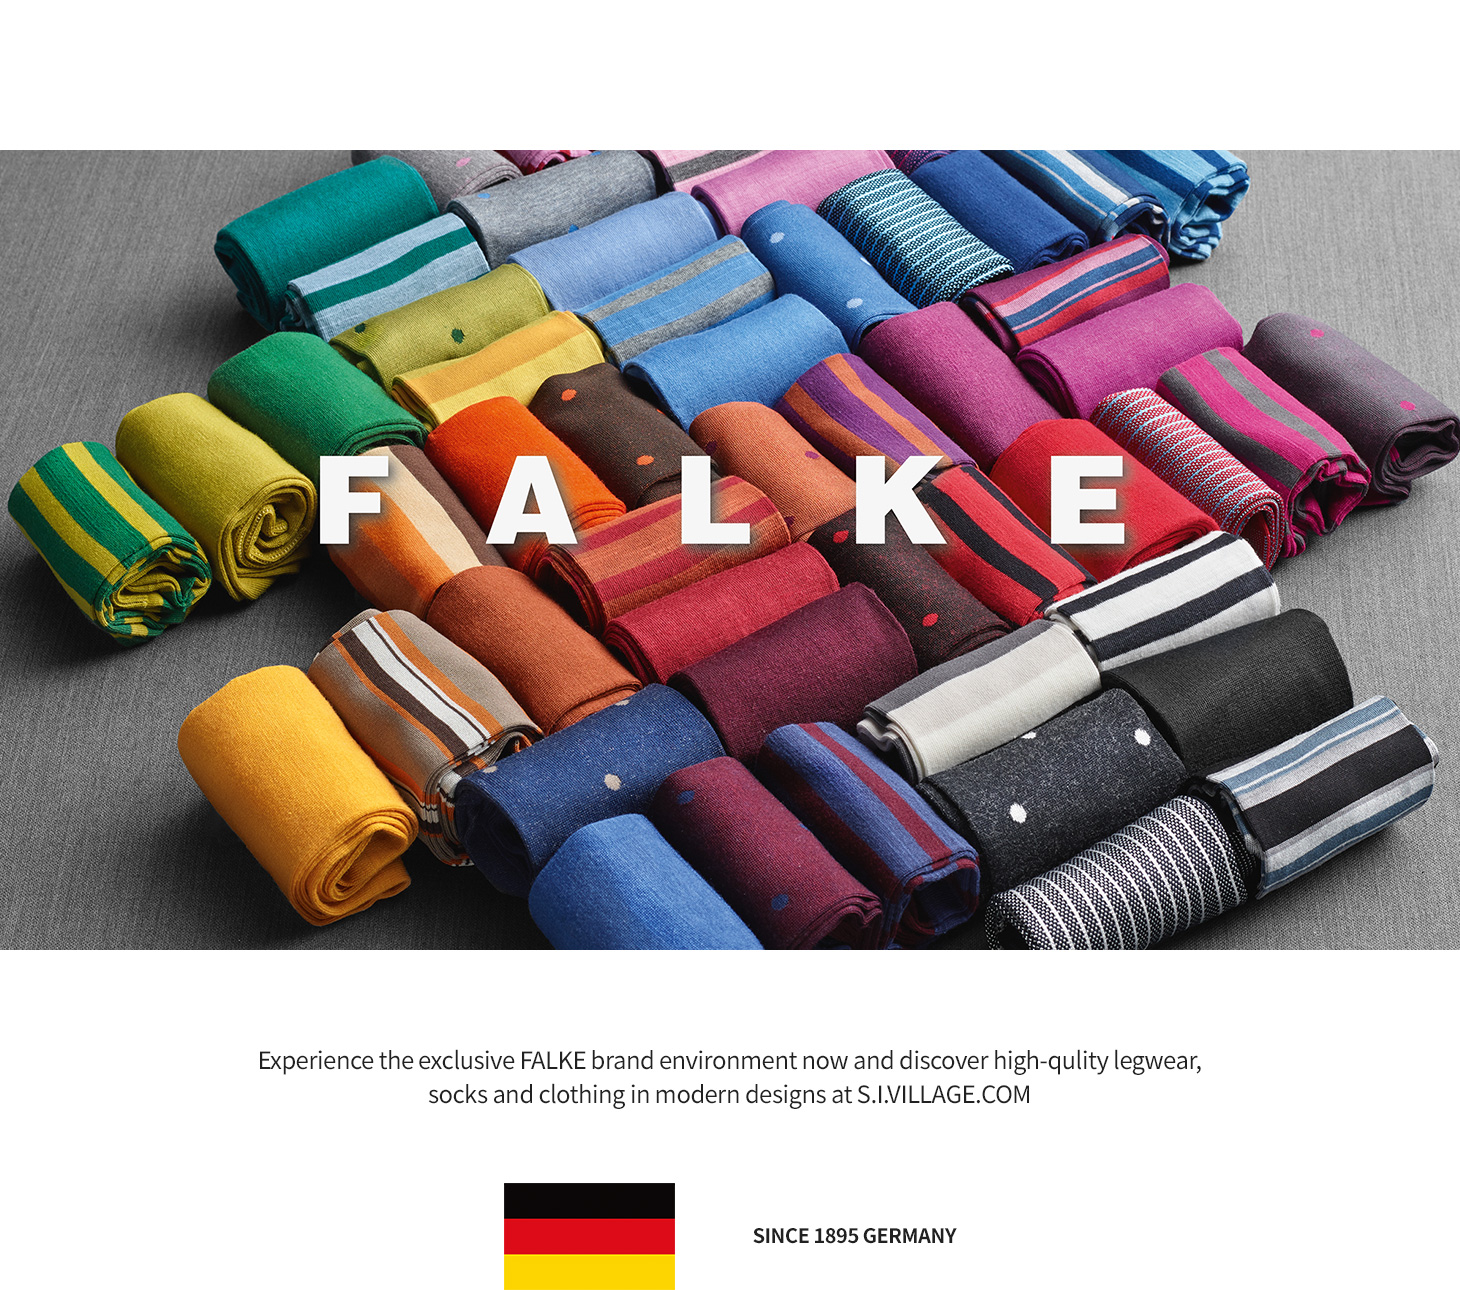 Experience the exclusive FALKE brand environment now and discover high-qulity legwear,socks and clothing in modern designs at S.I.VILLAGE.COM